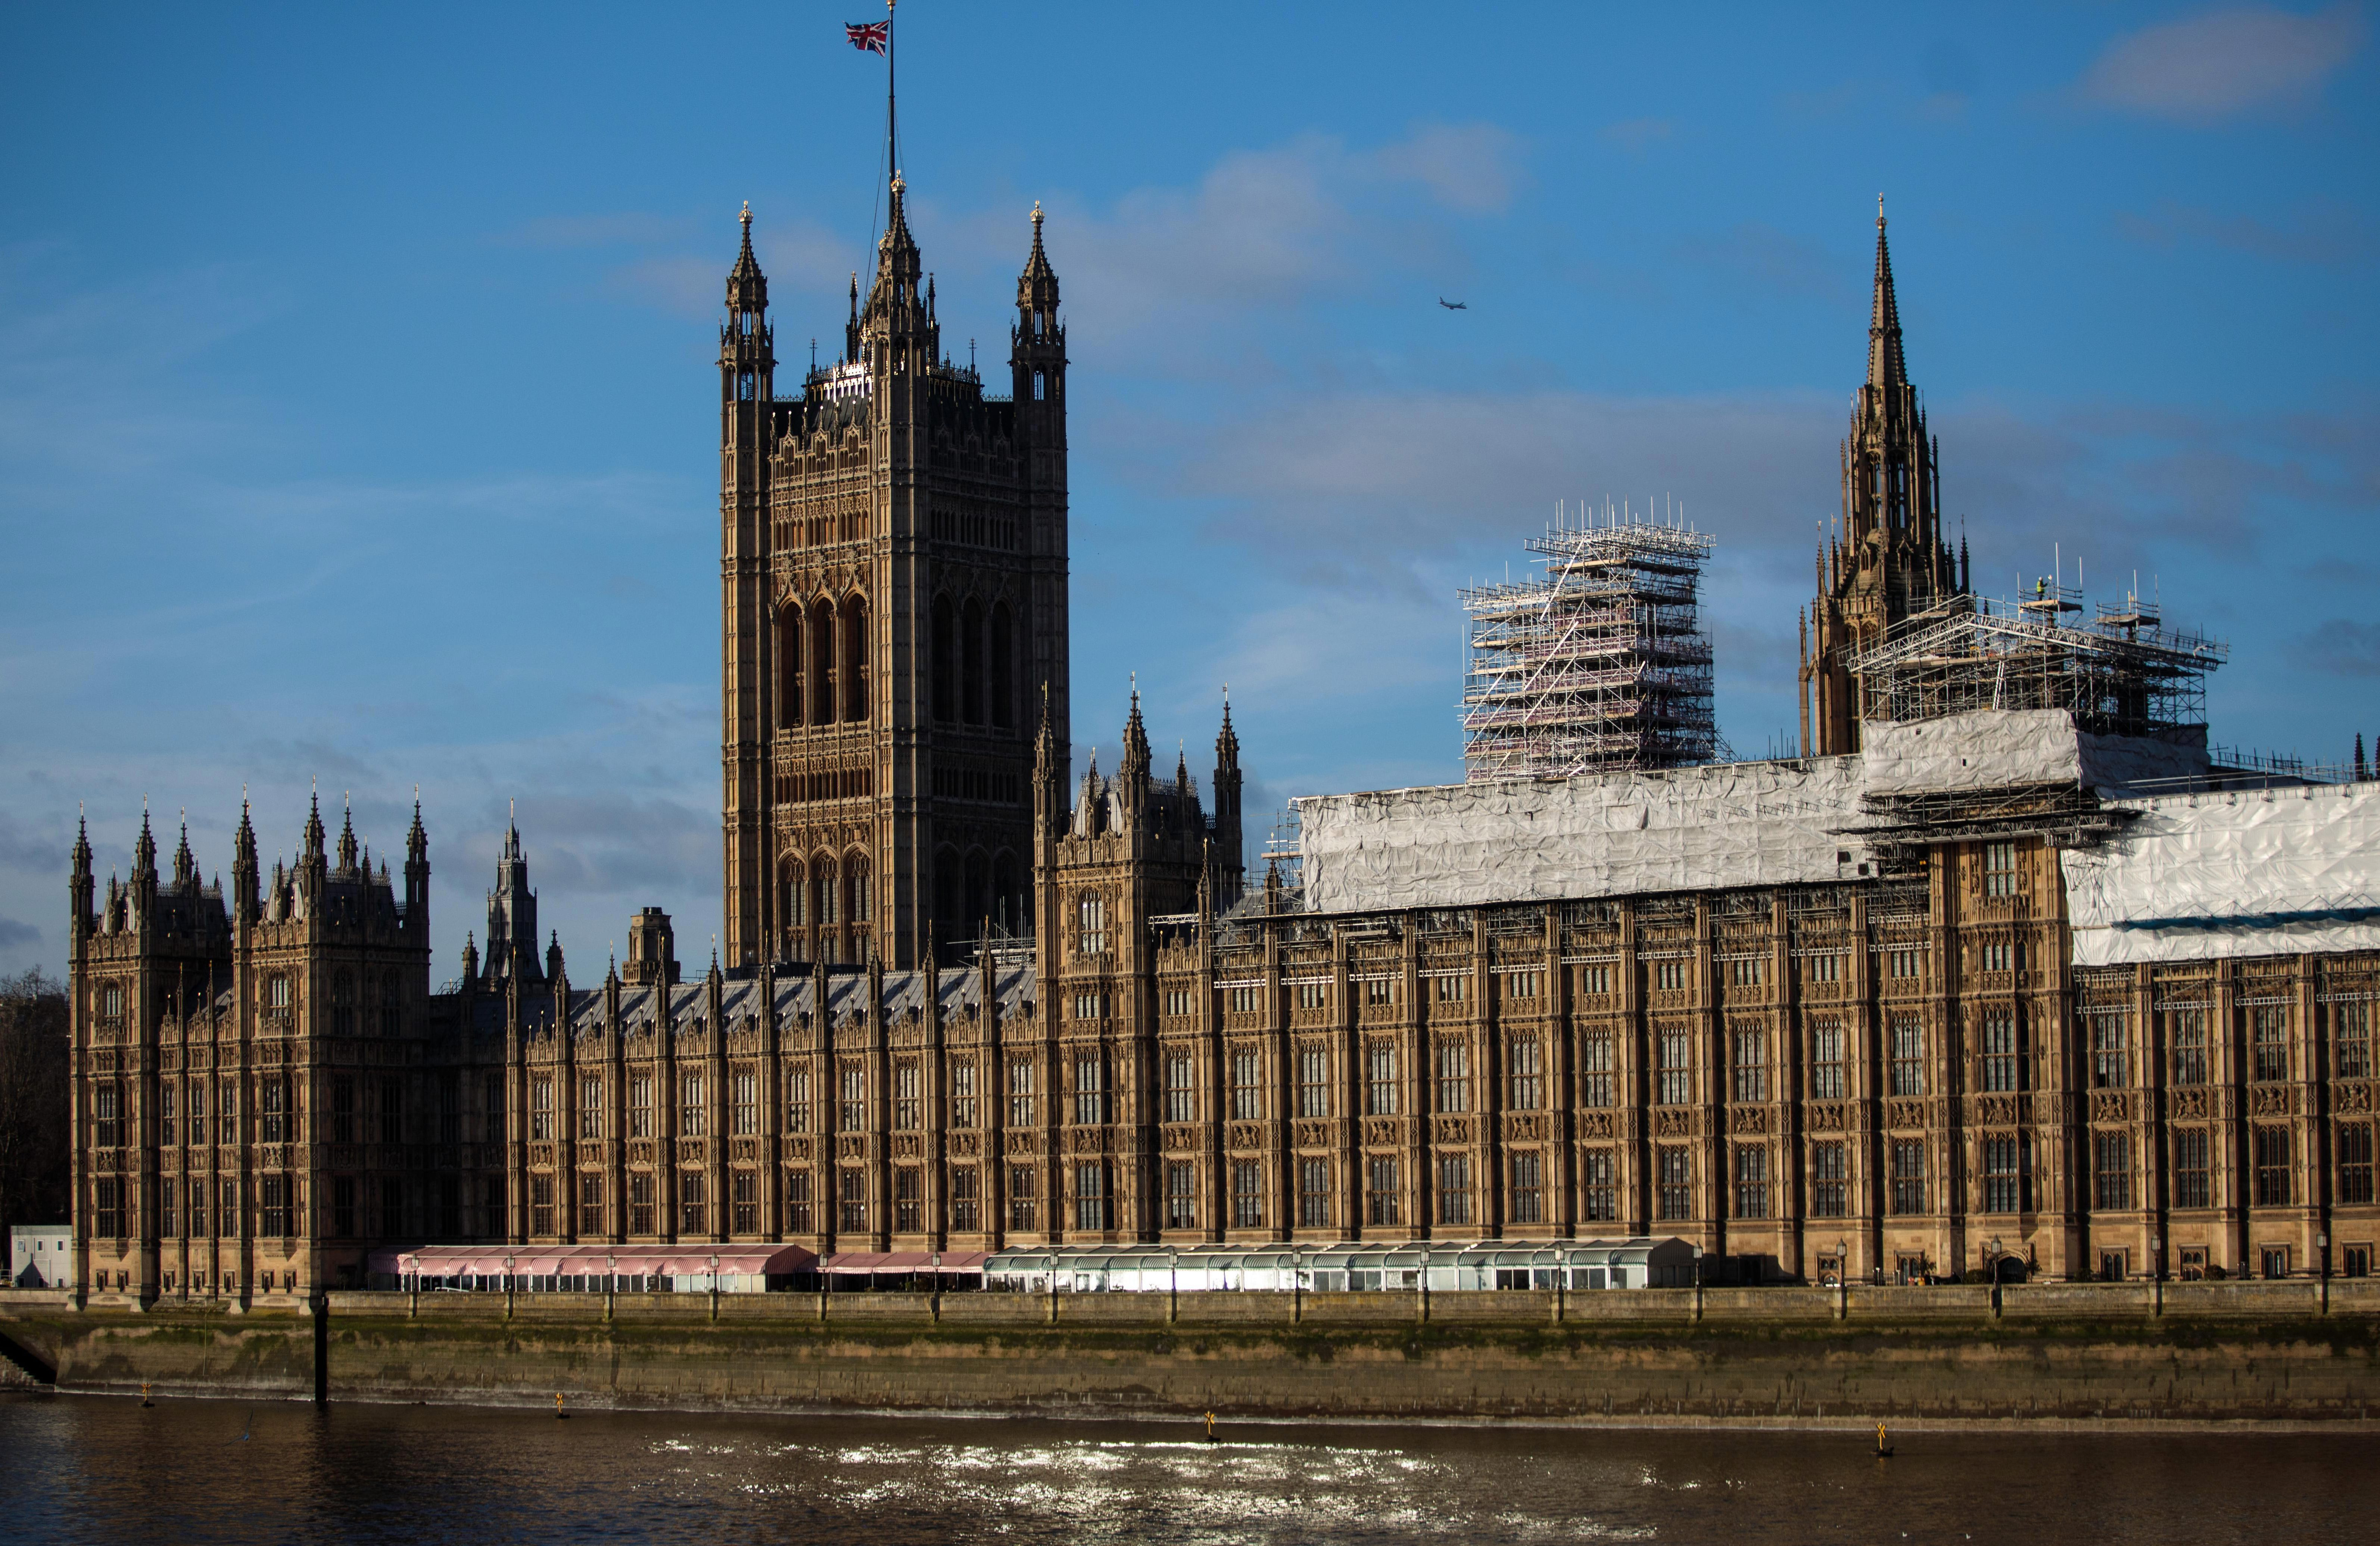 MPs set to reject crackdown on booze sales in Parliament despite bullying and sexual harassment scandal